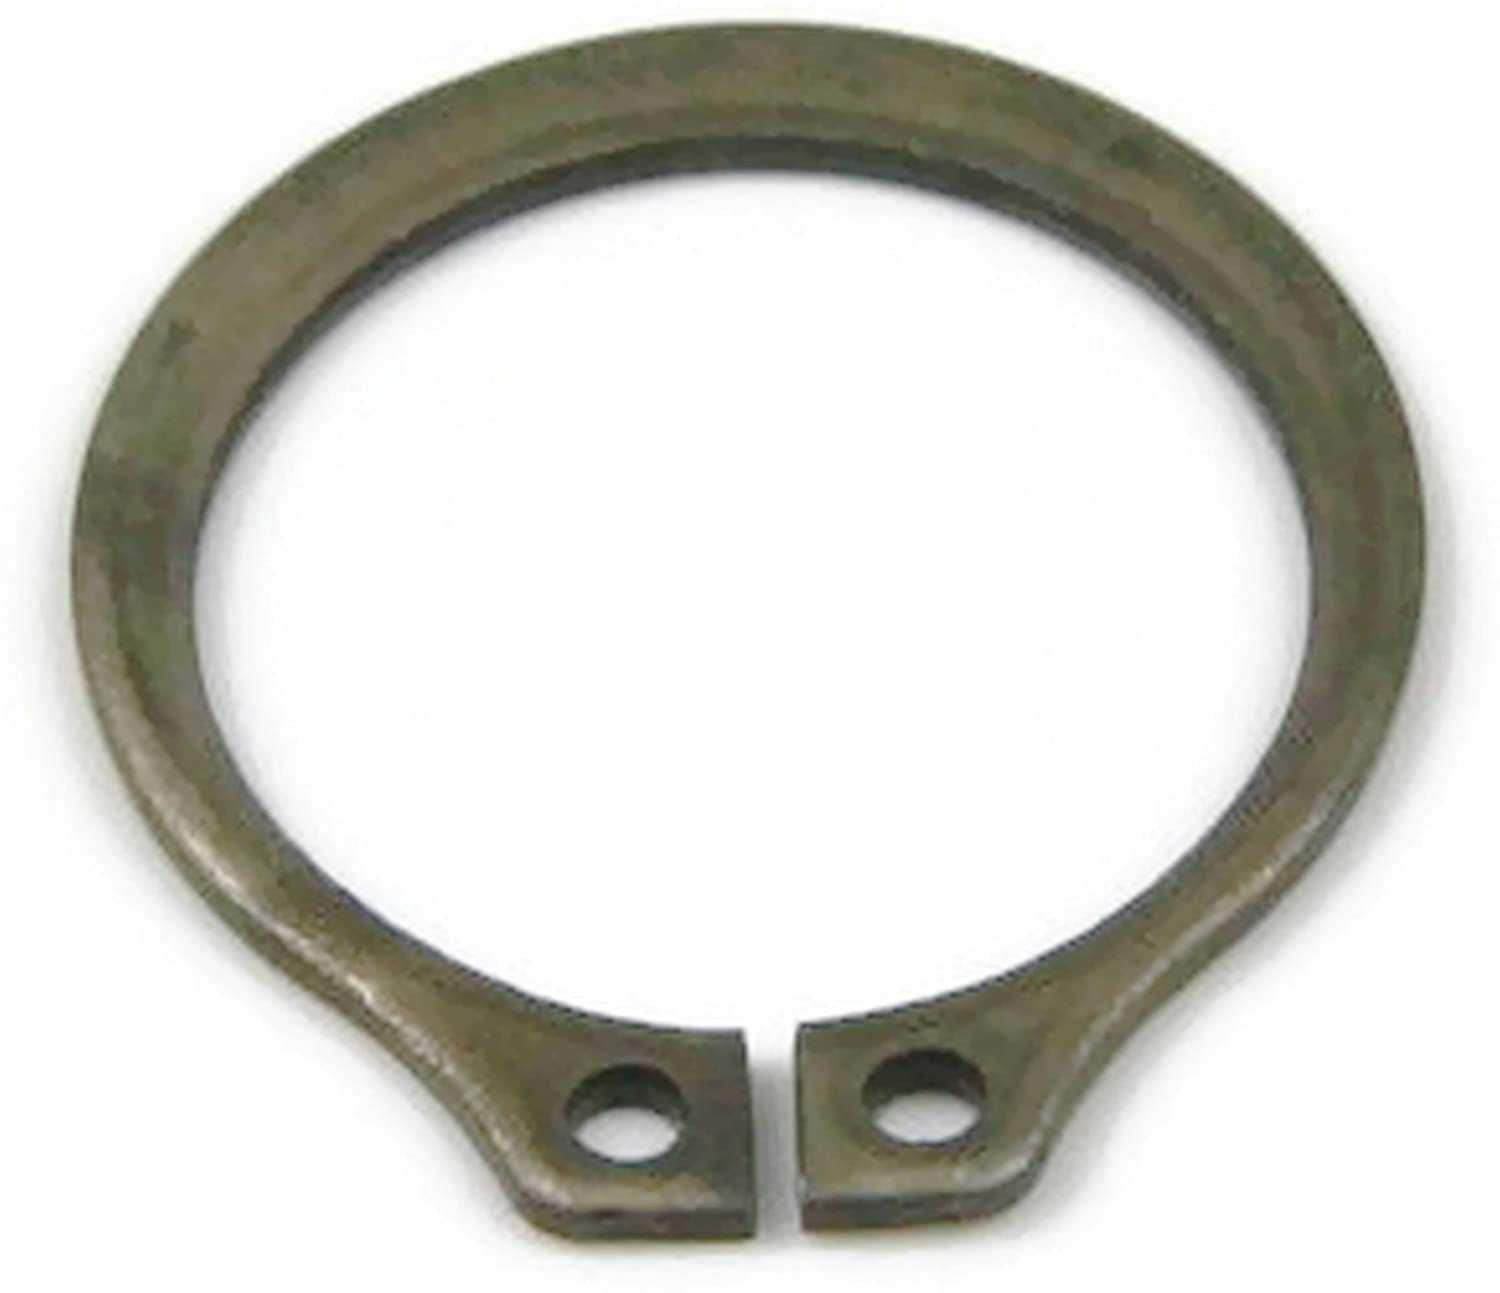 Stainless Steel E Snap Rings Retaining Rings SE-15SS 5//32 Qty 1000